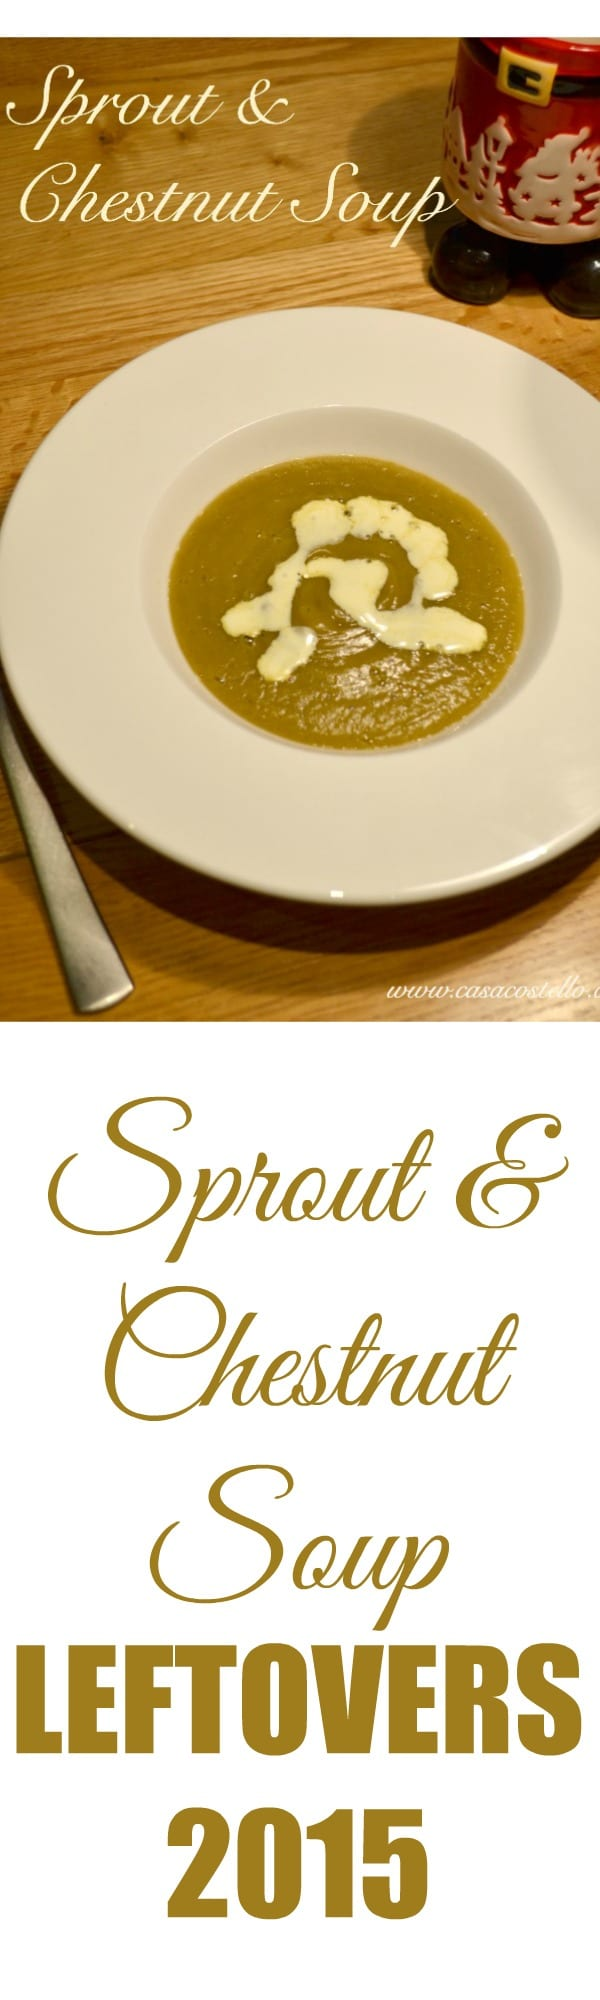 Sprout & Chestnut Soup - Christmas Leftovers 2015